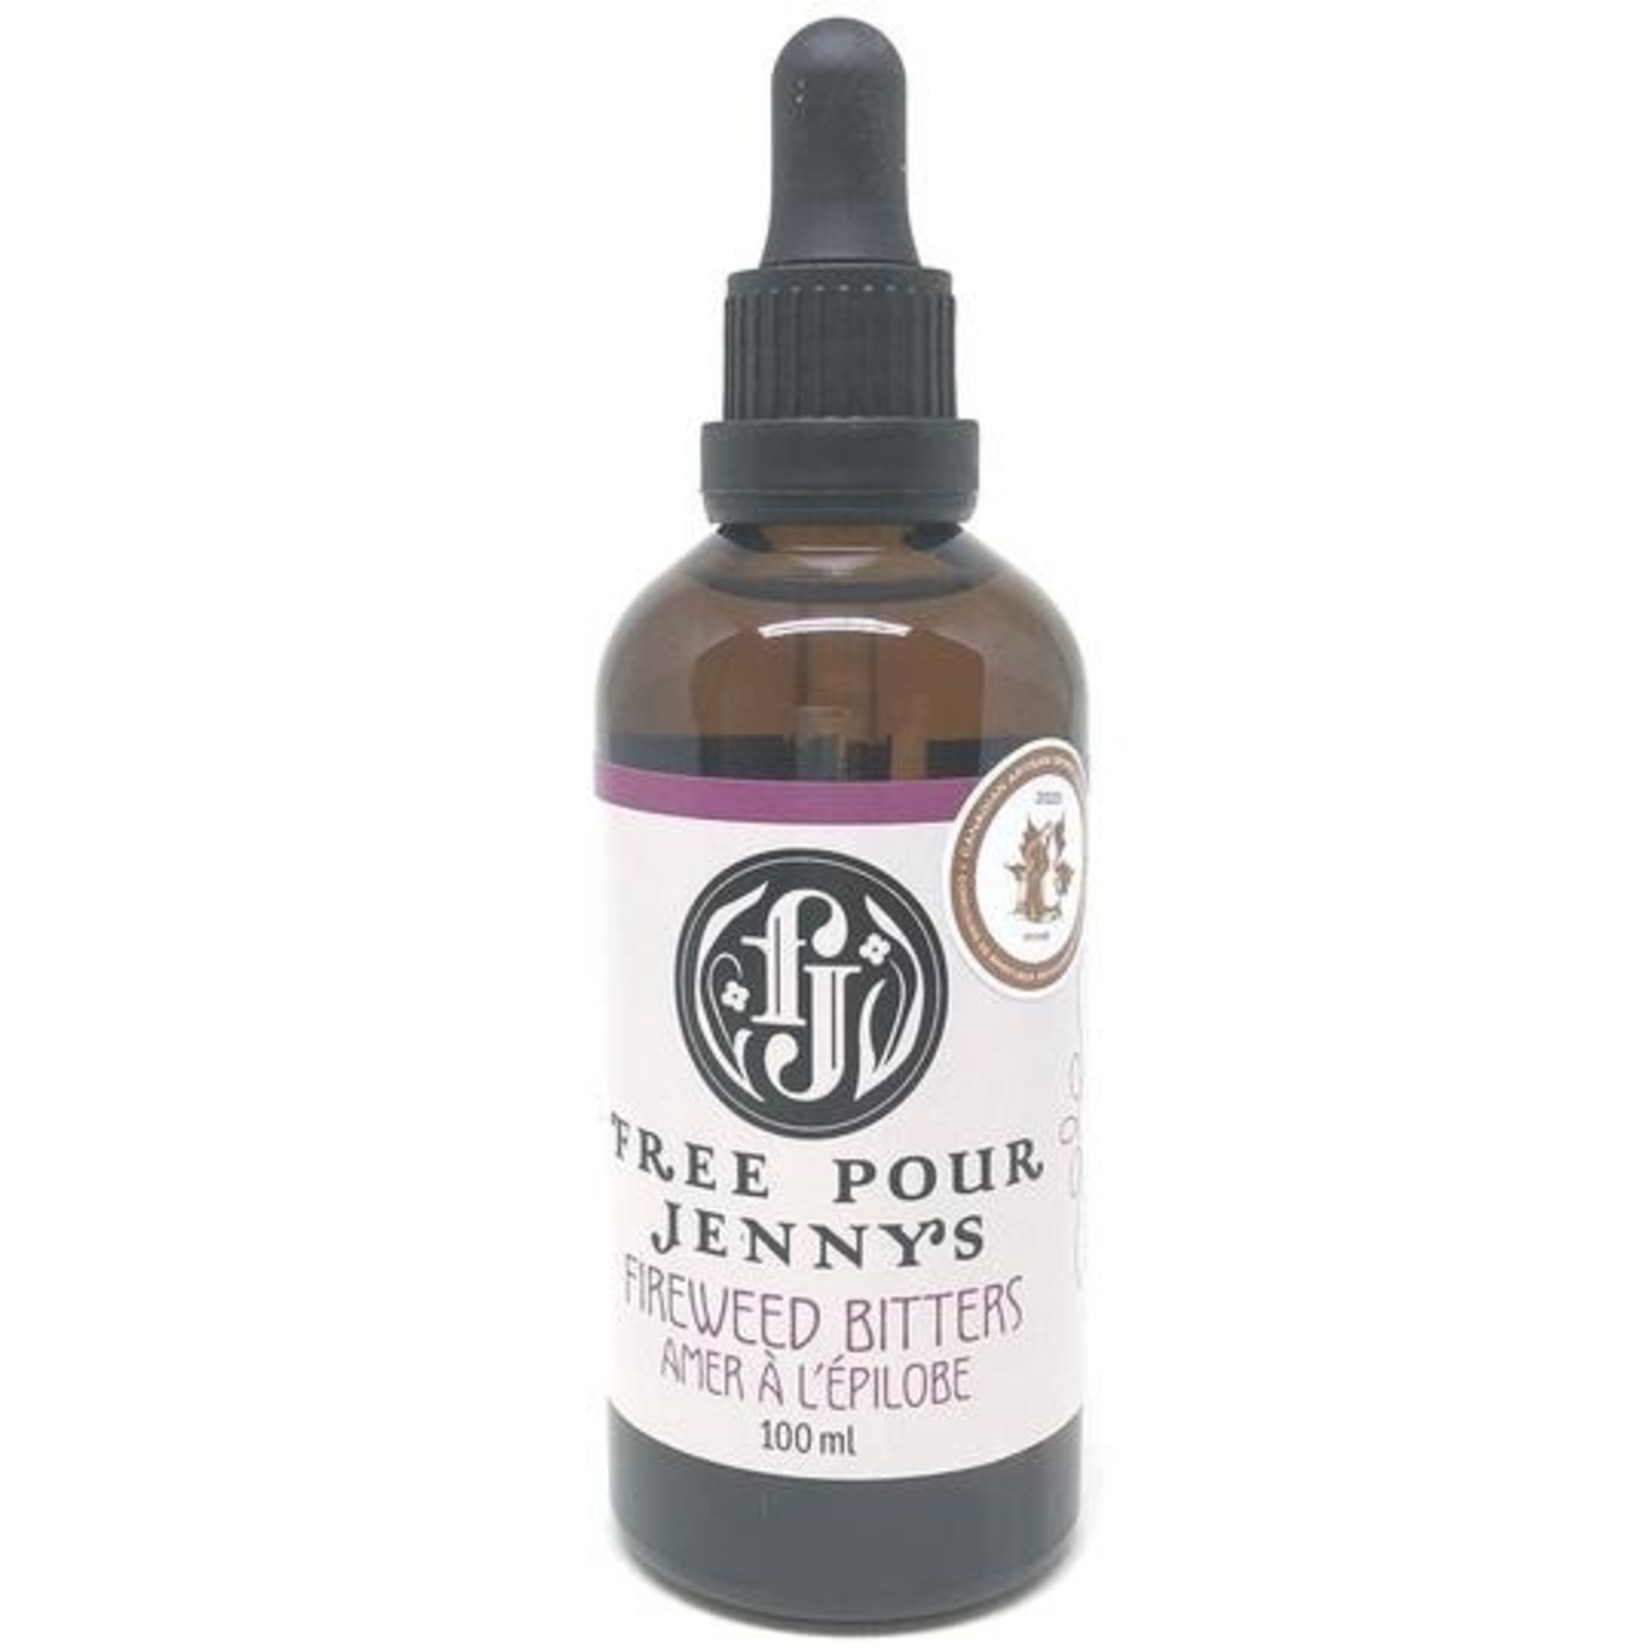 Free Pour Jenny's Free Pour Jenny's Bitters Fireweed